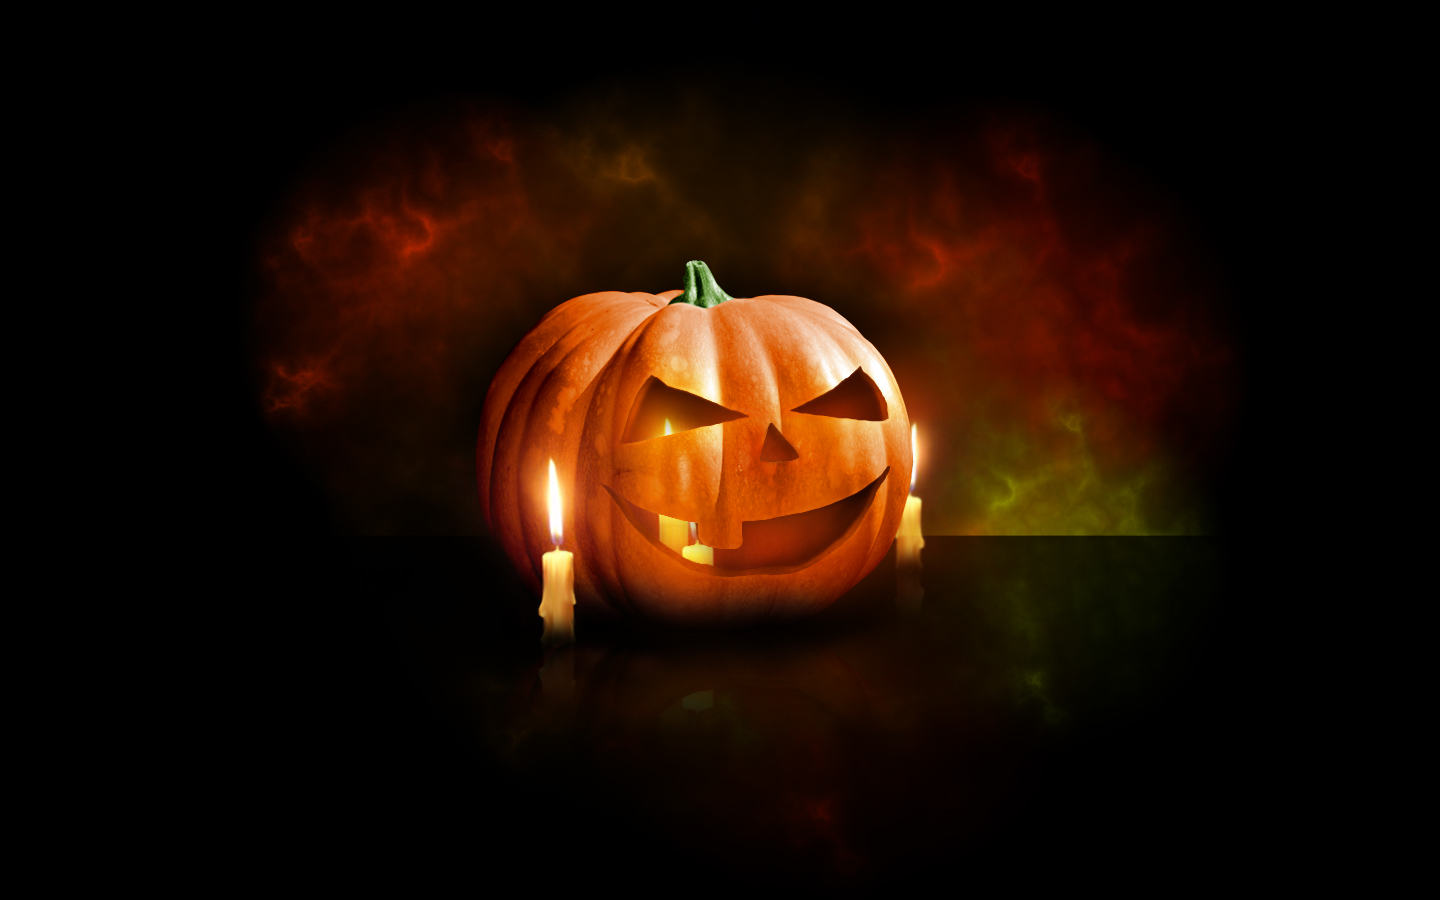 Design a Halloween Pumpkin Wallpaper in Photoshop 1440x900